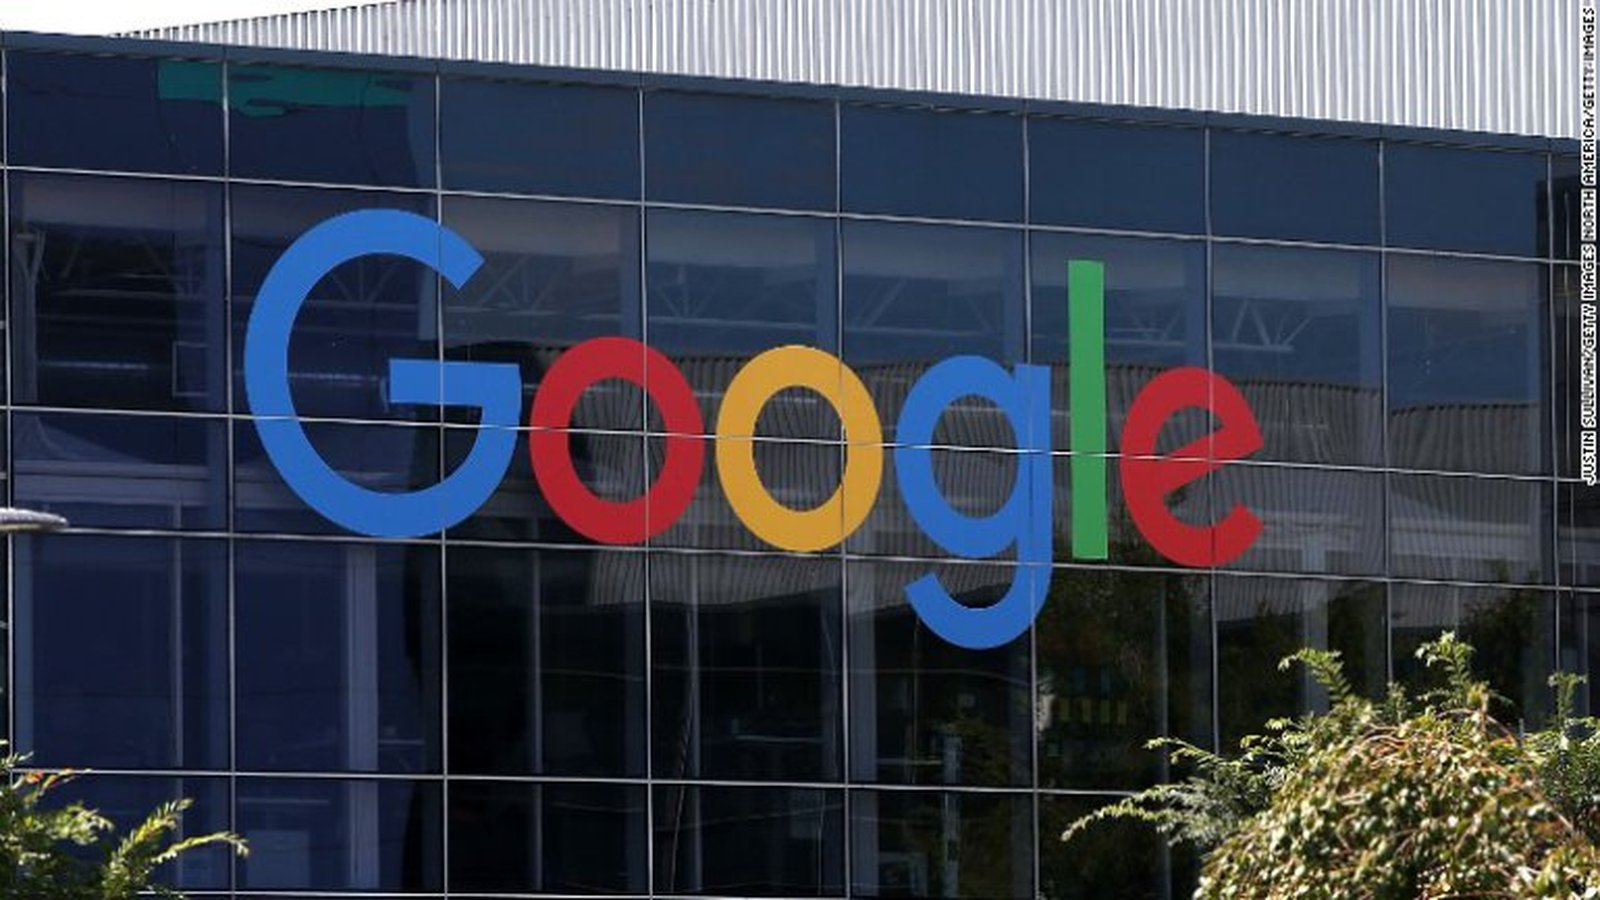 Google to Launch AI Center In China - Newslibre